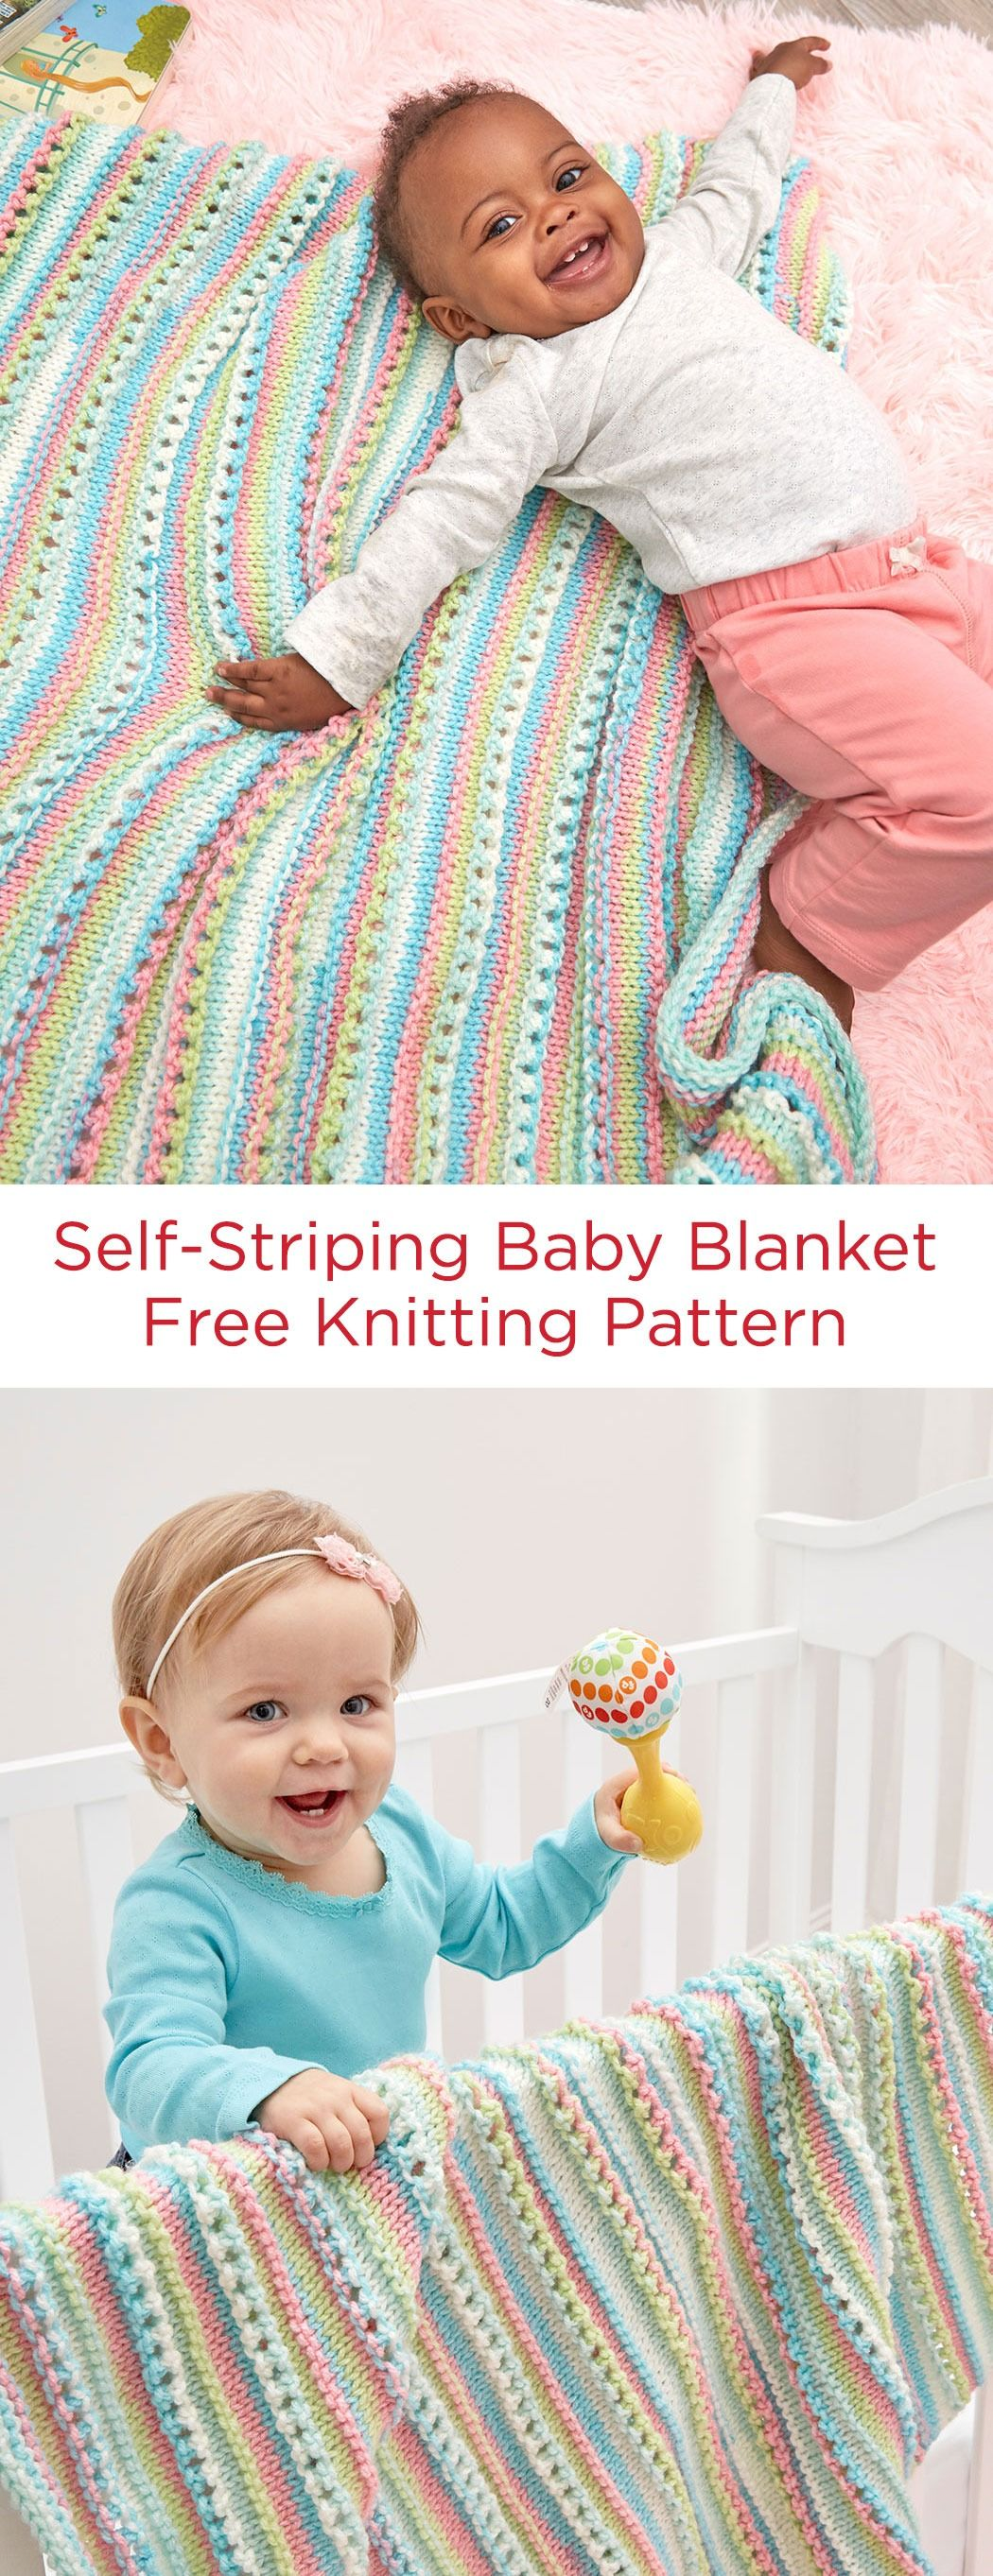 Self-Striping Baby Blanket Free Knitting Pattern in Red Heart Yarns ...